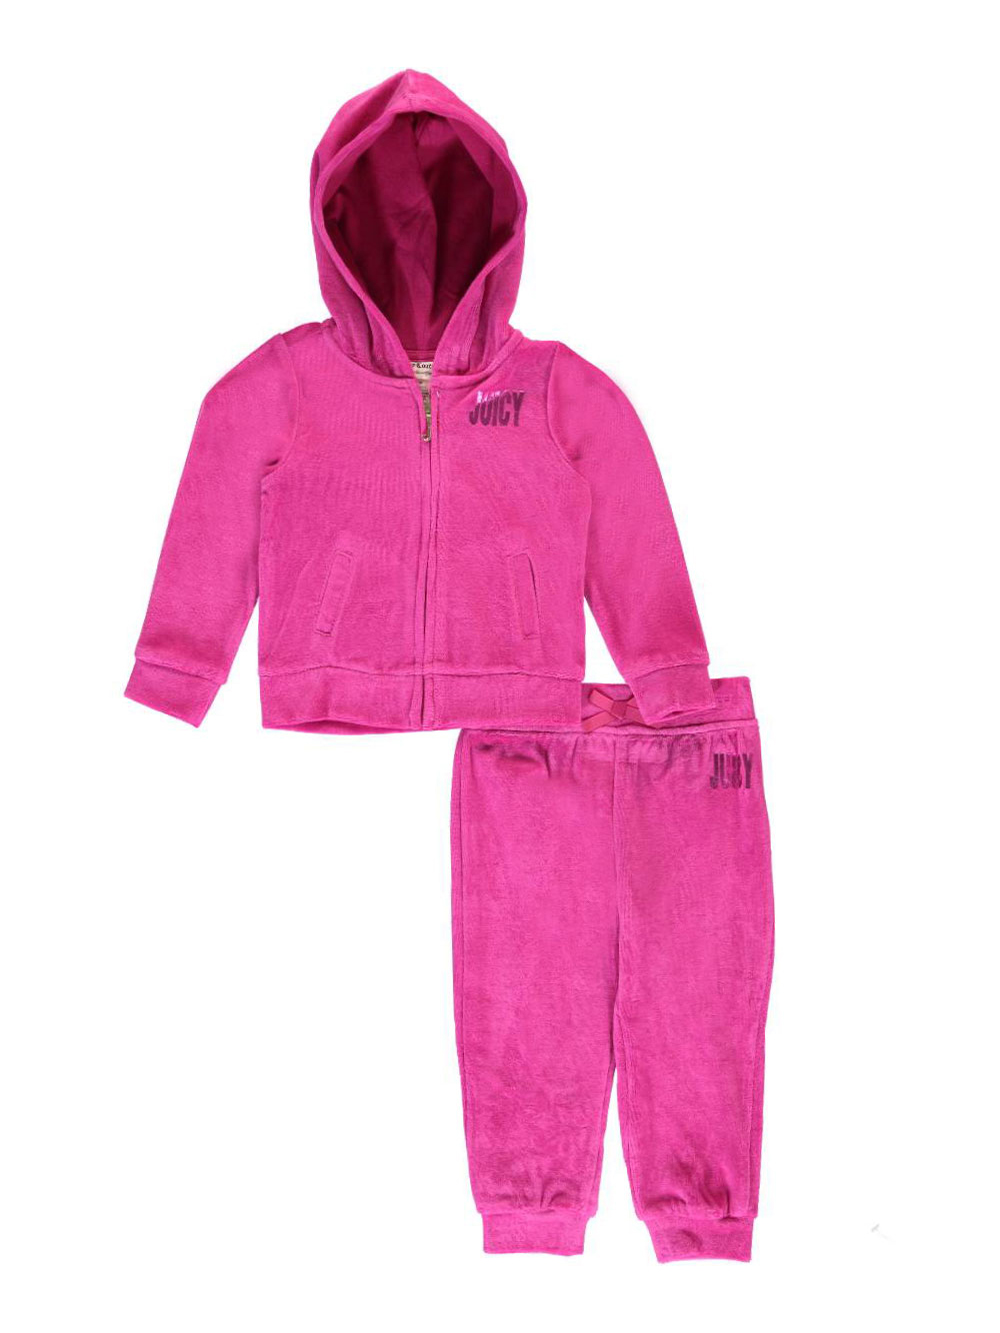 Juicy Couture Baby Girls Spot The Couture 2 Piece Velour